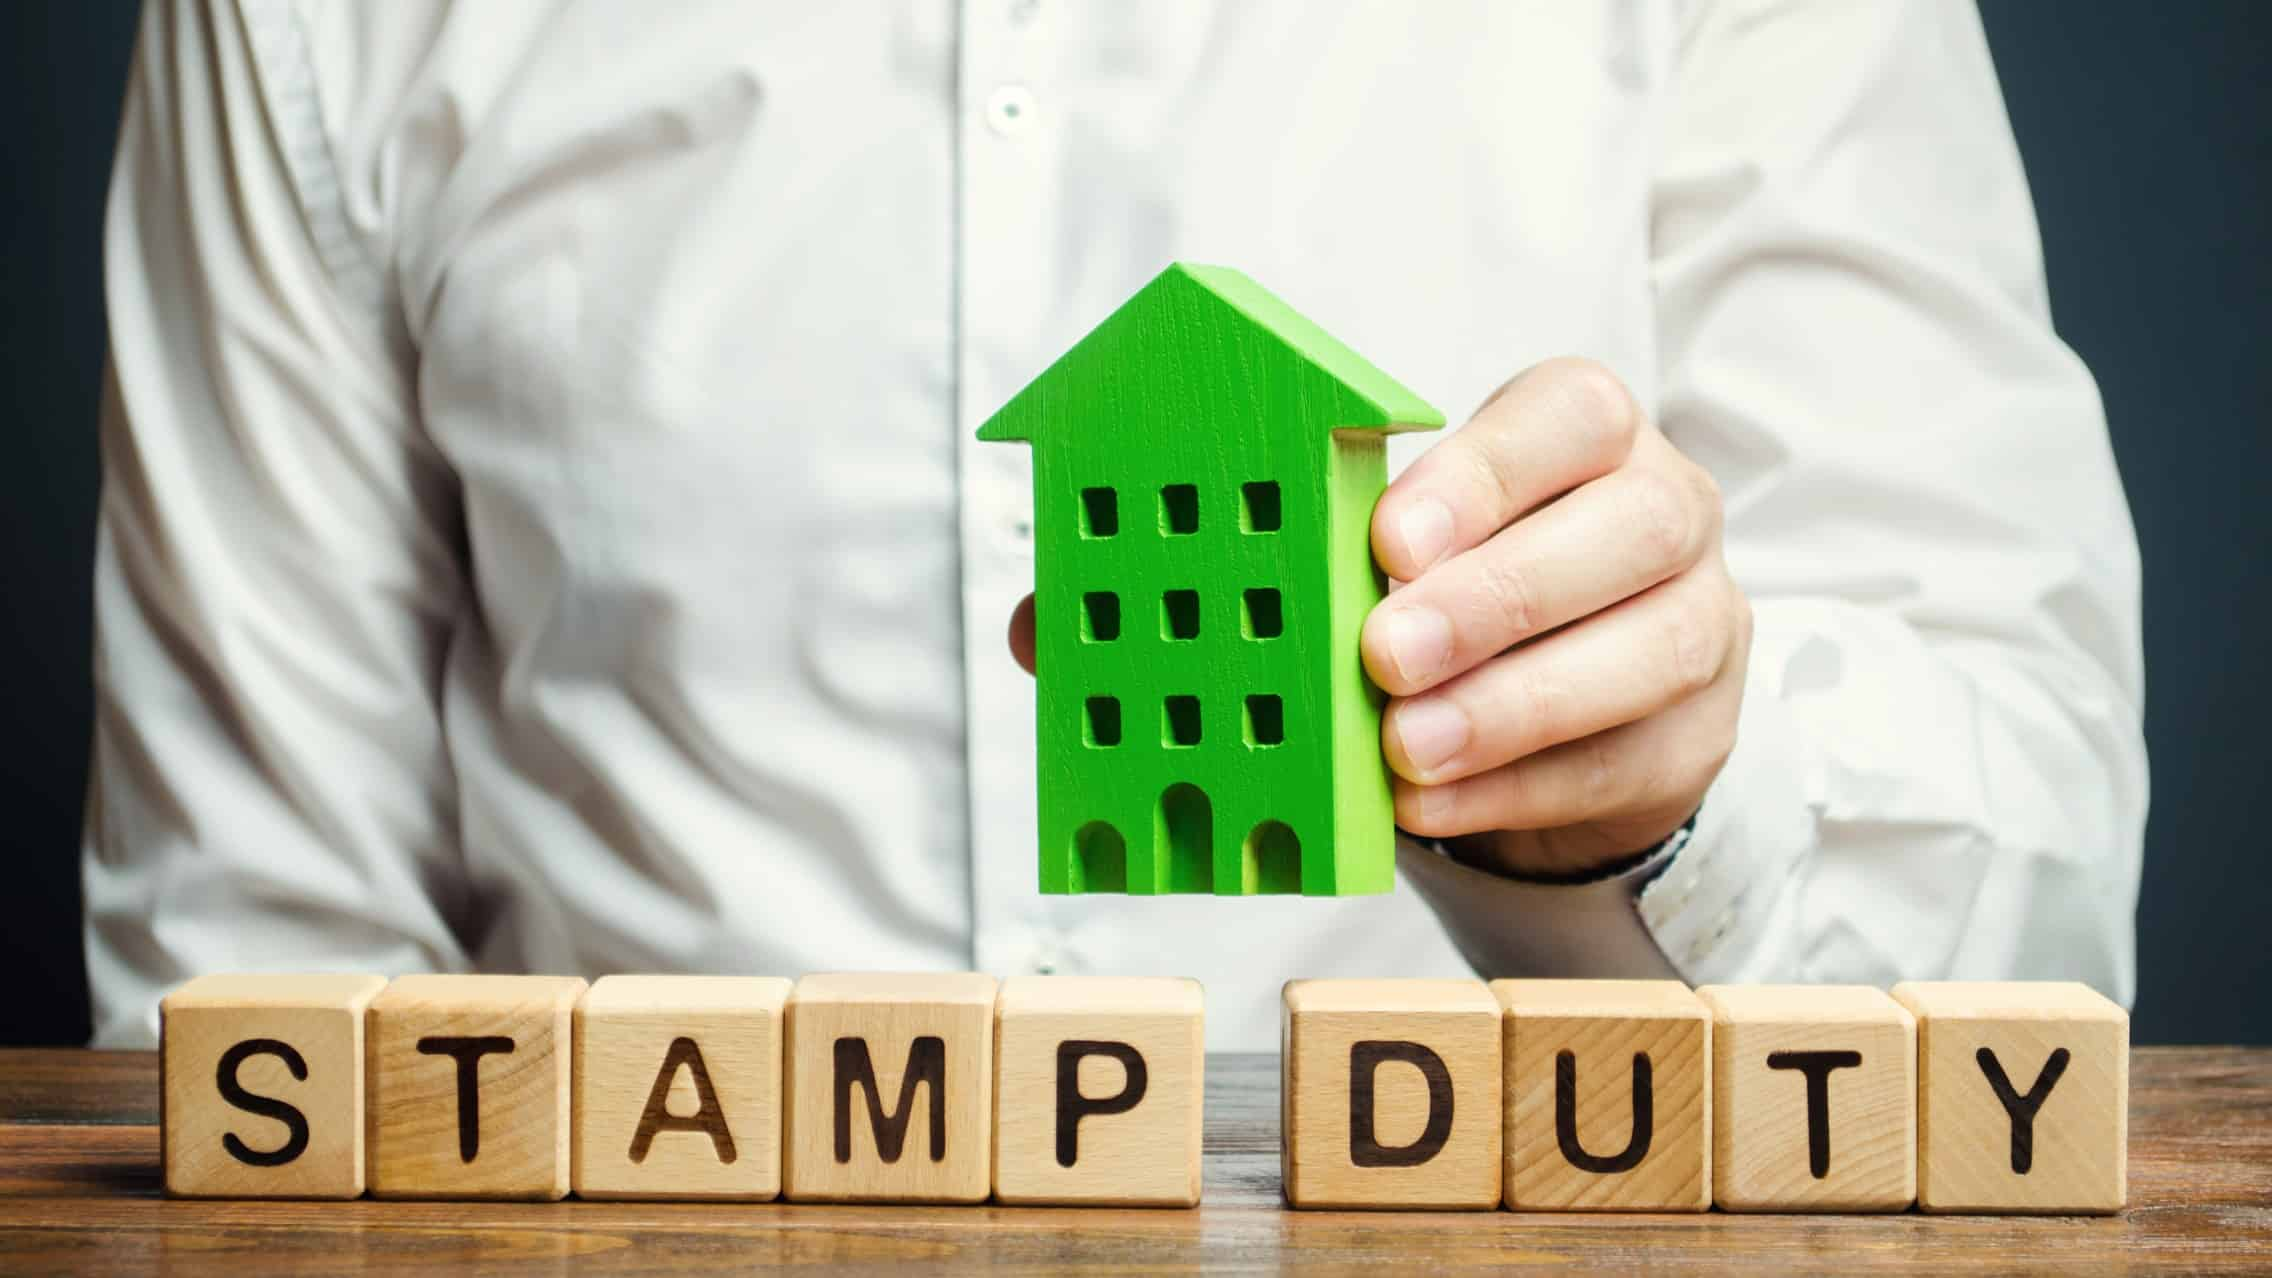 asx investor placing wooden house block on other blocks spelling words stamp duty